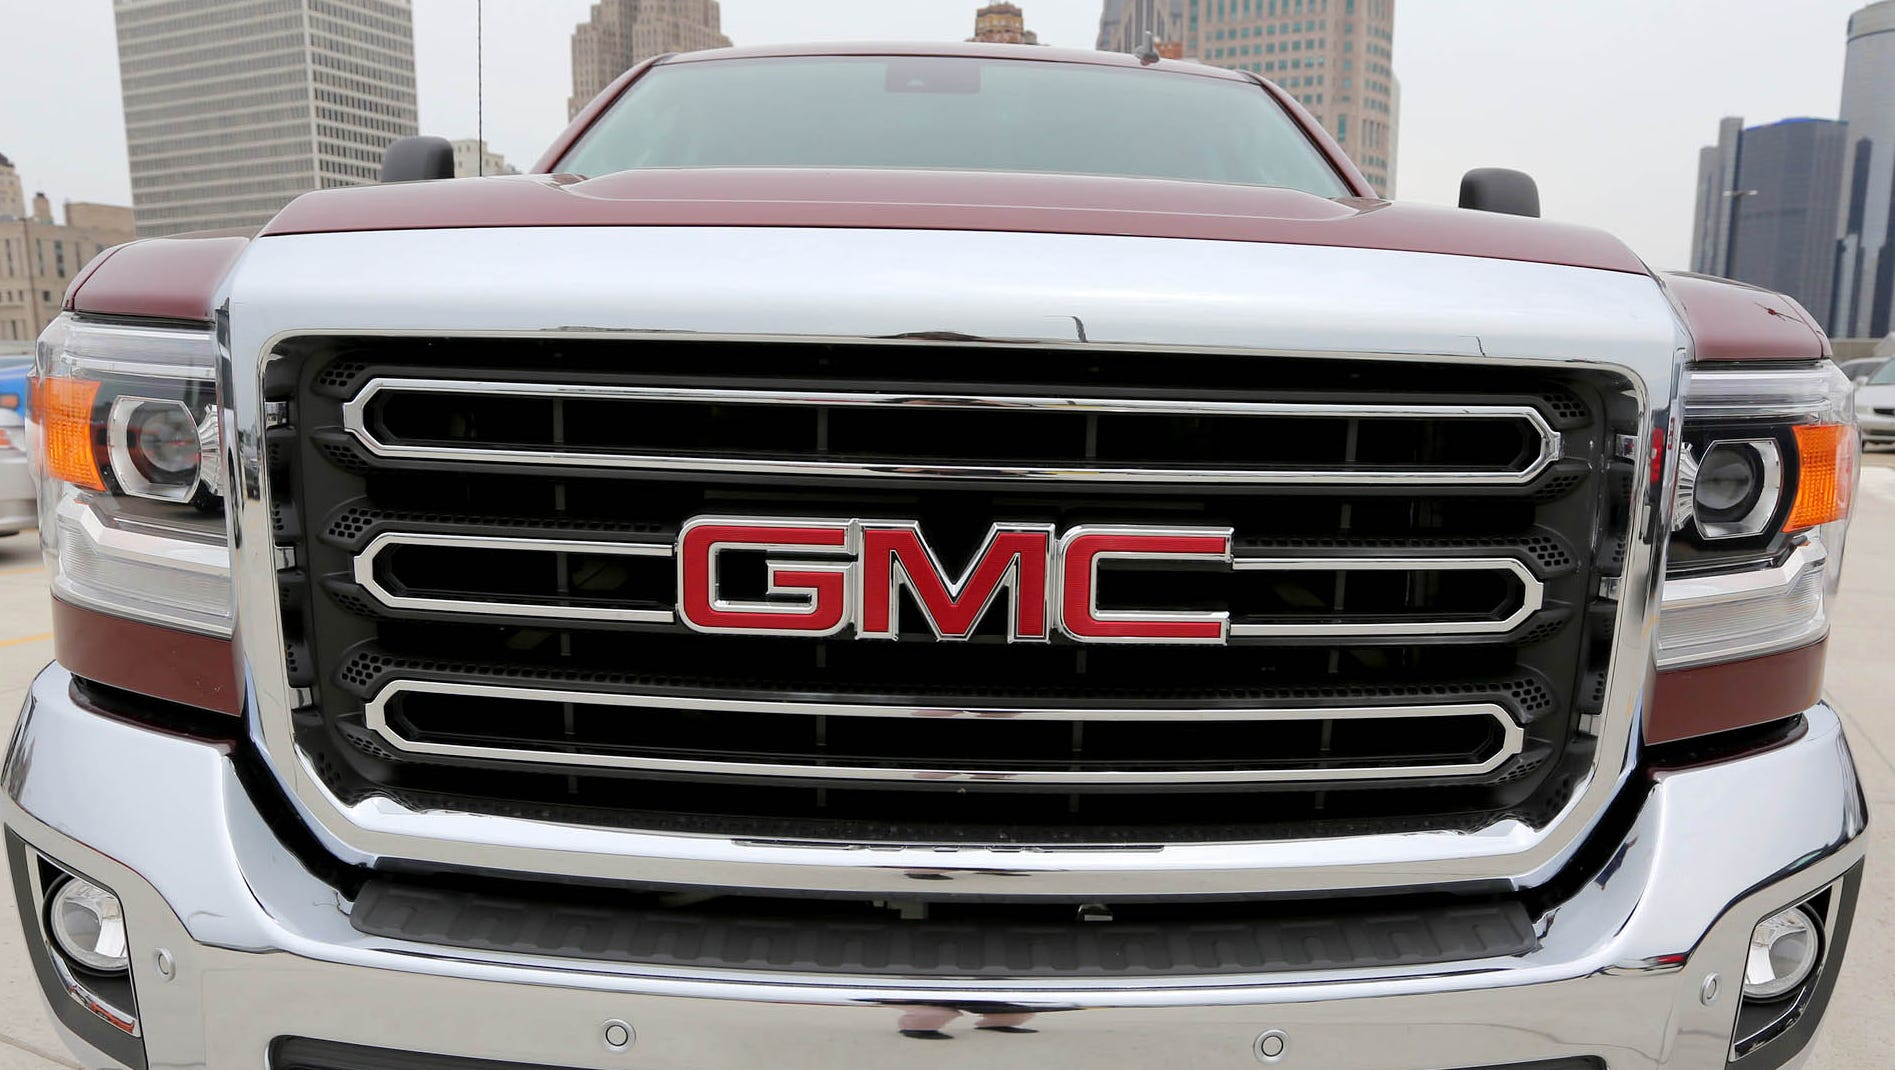 5 Things To Know About Gmc The Luxury Truck Brand